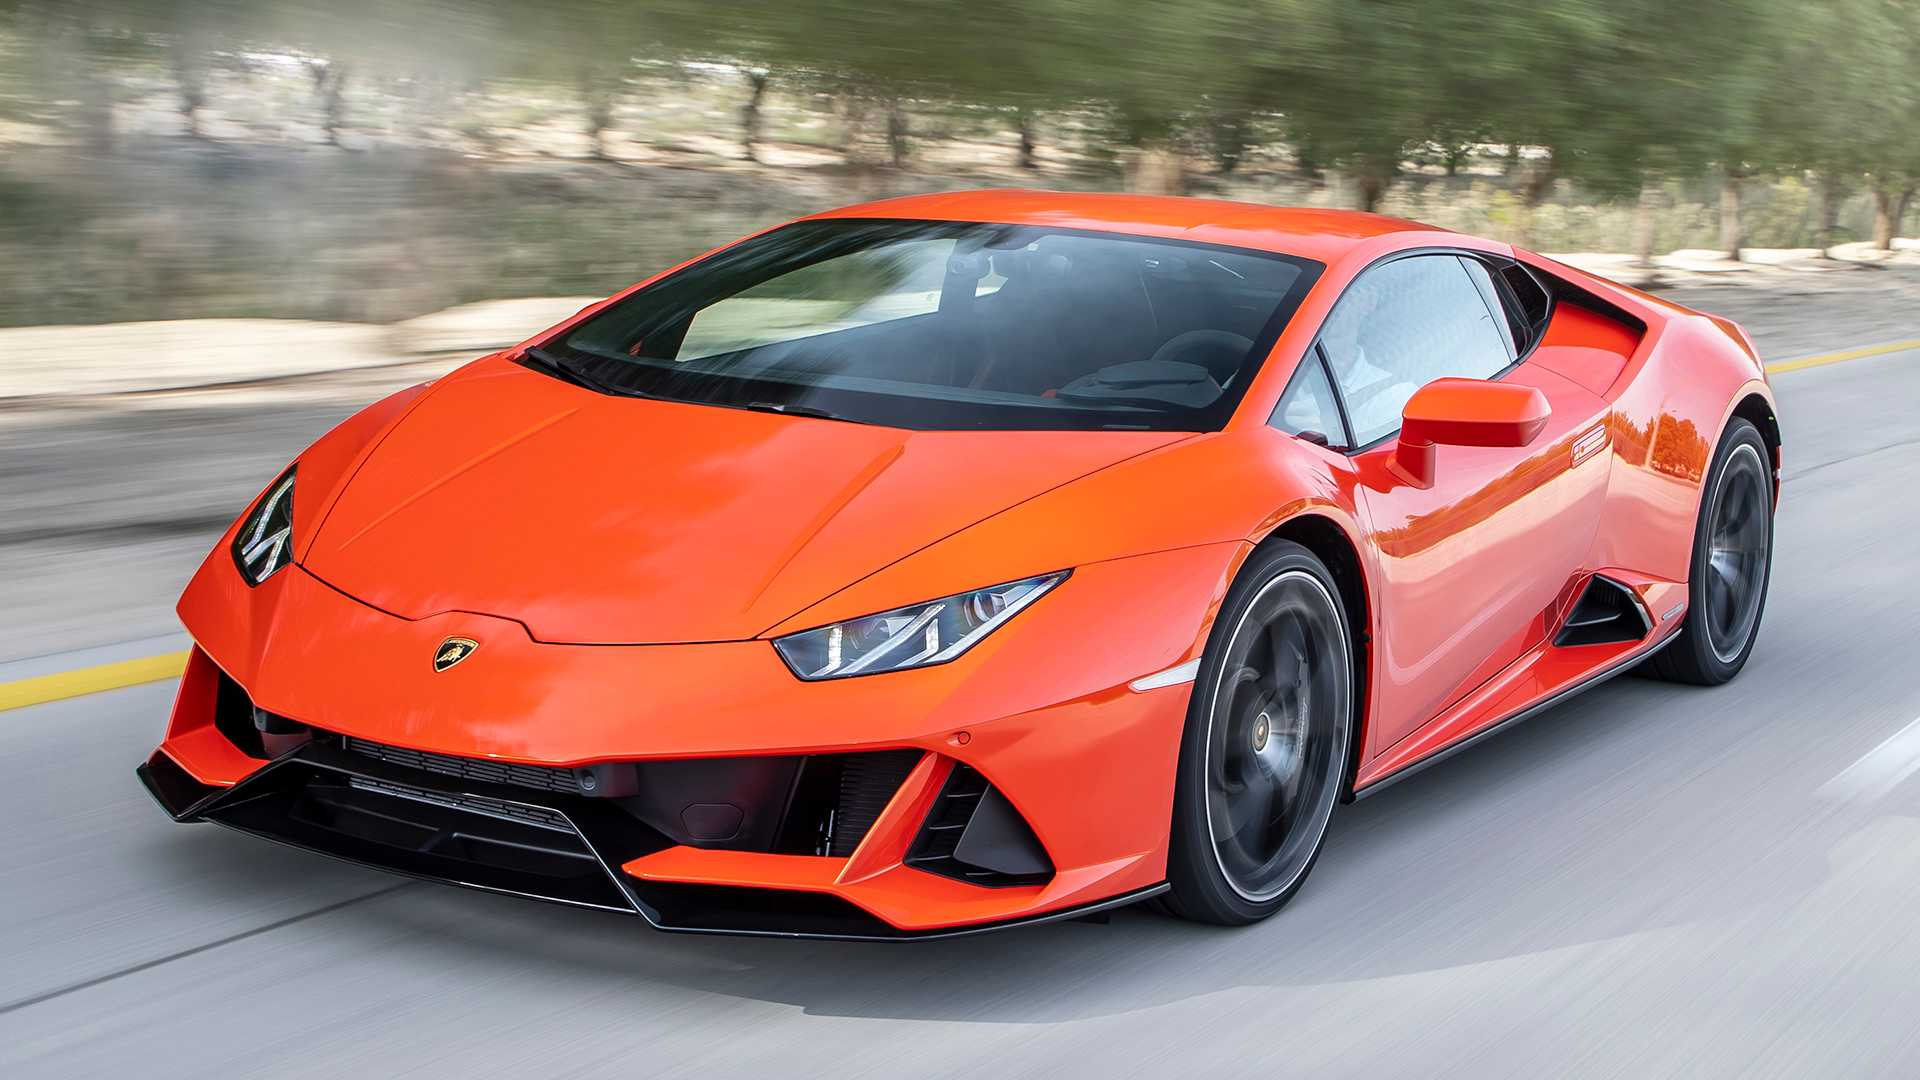 2020 Lamborghini Huracan Evo First Drive Aptly Named